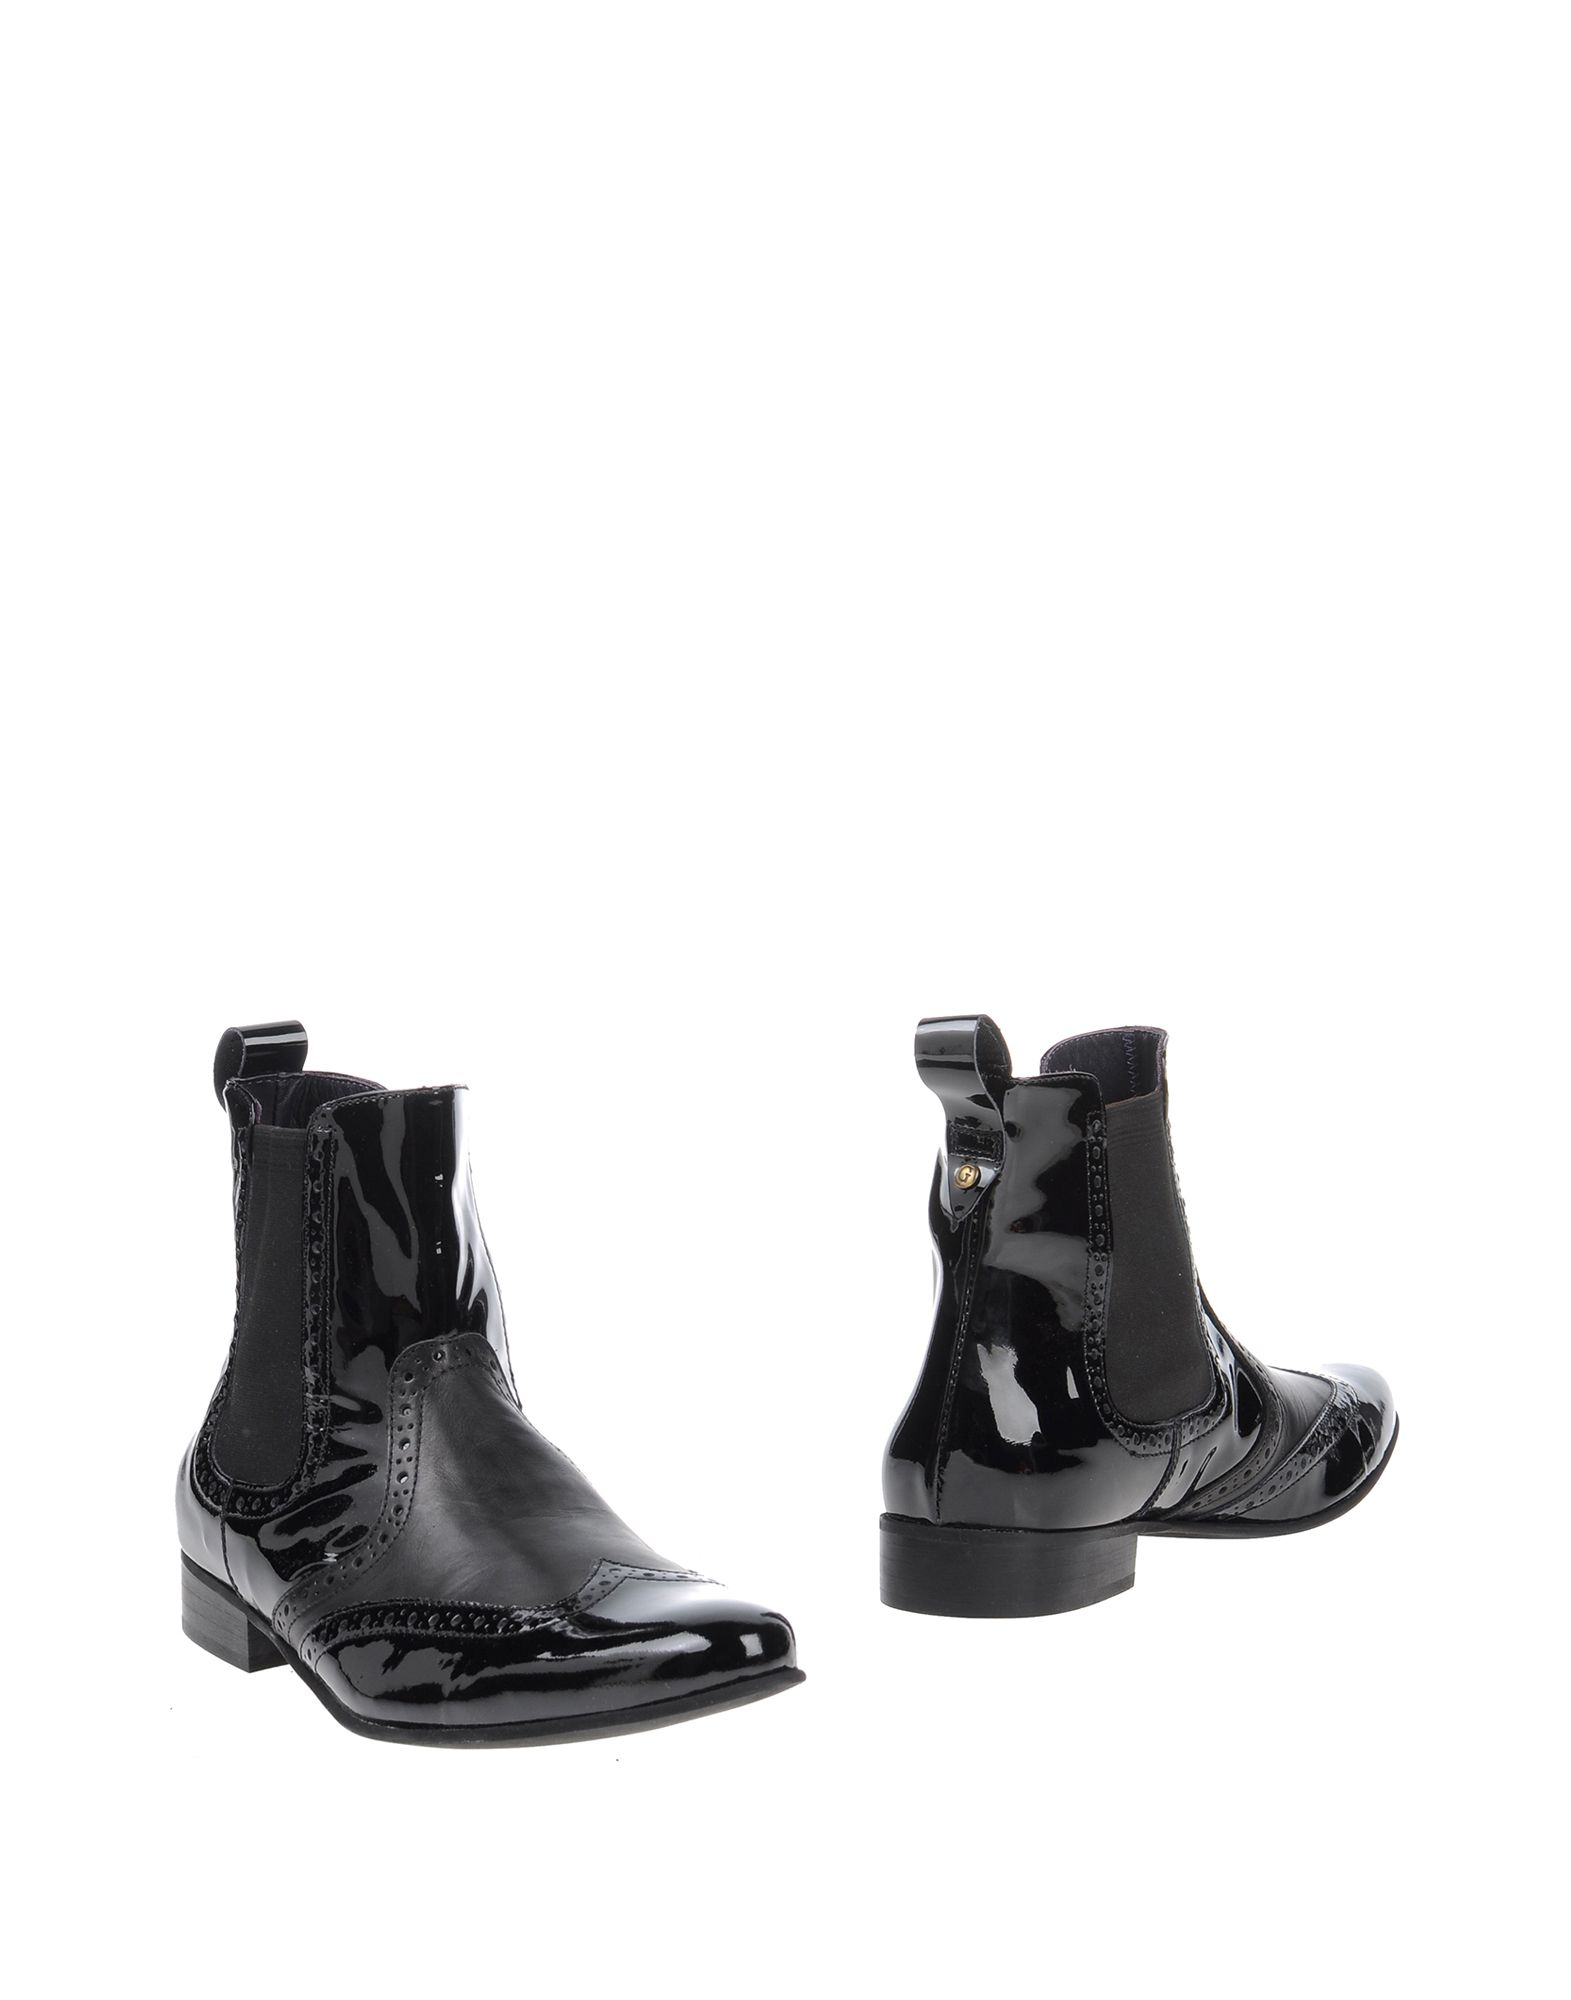 Marciano Shoes Prices